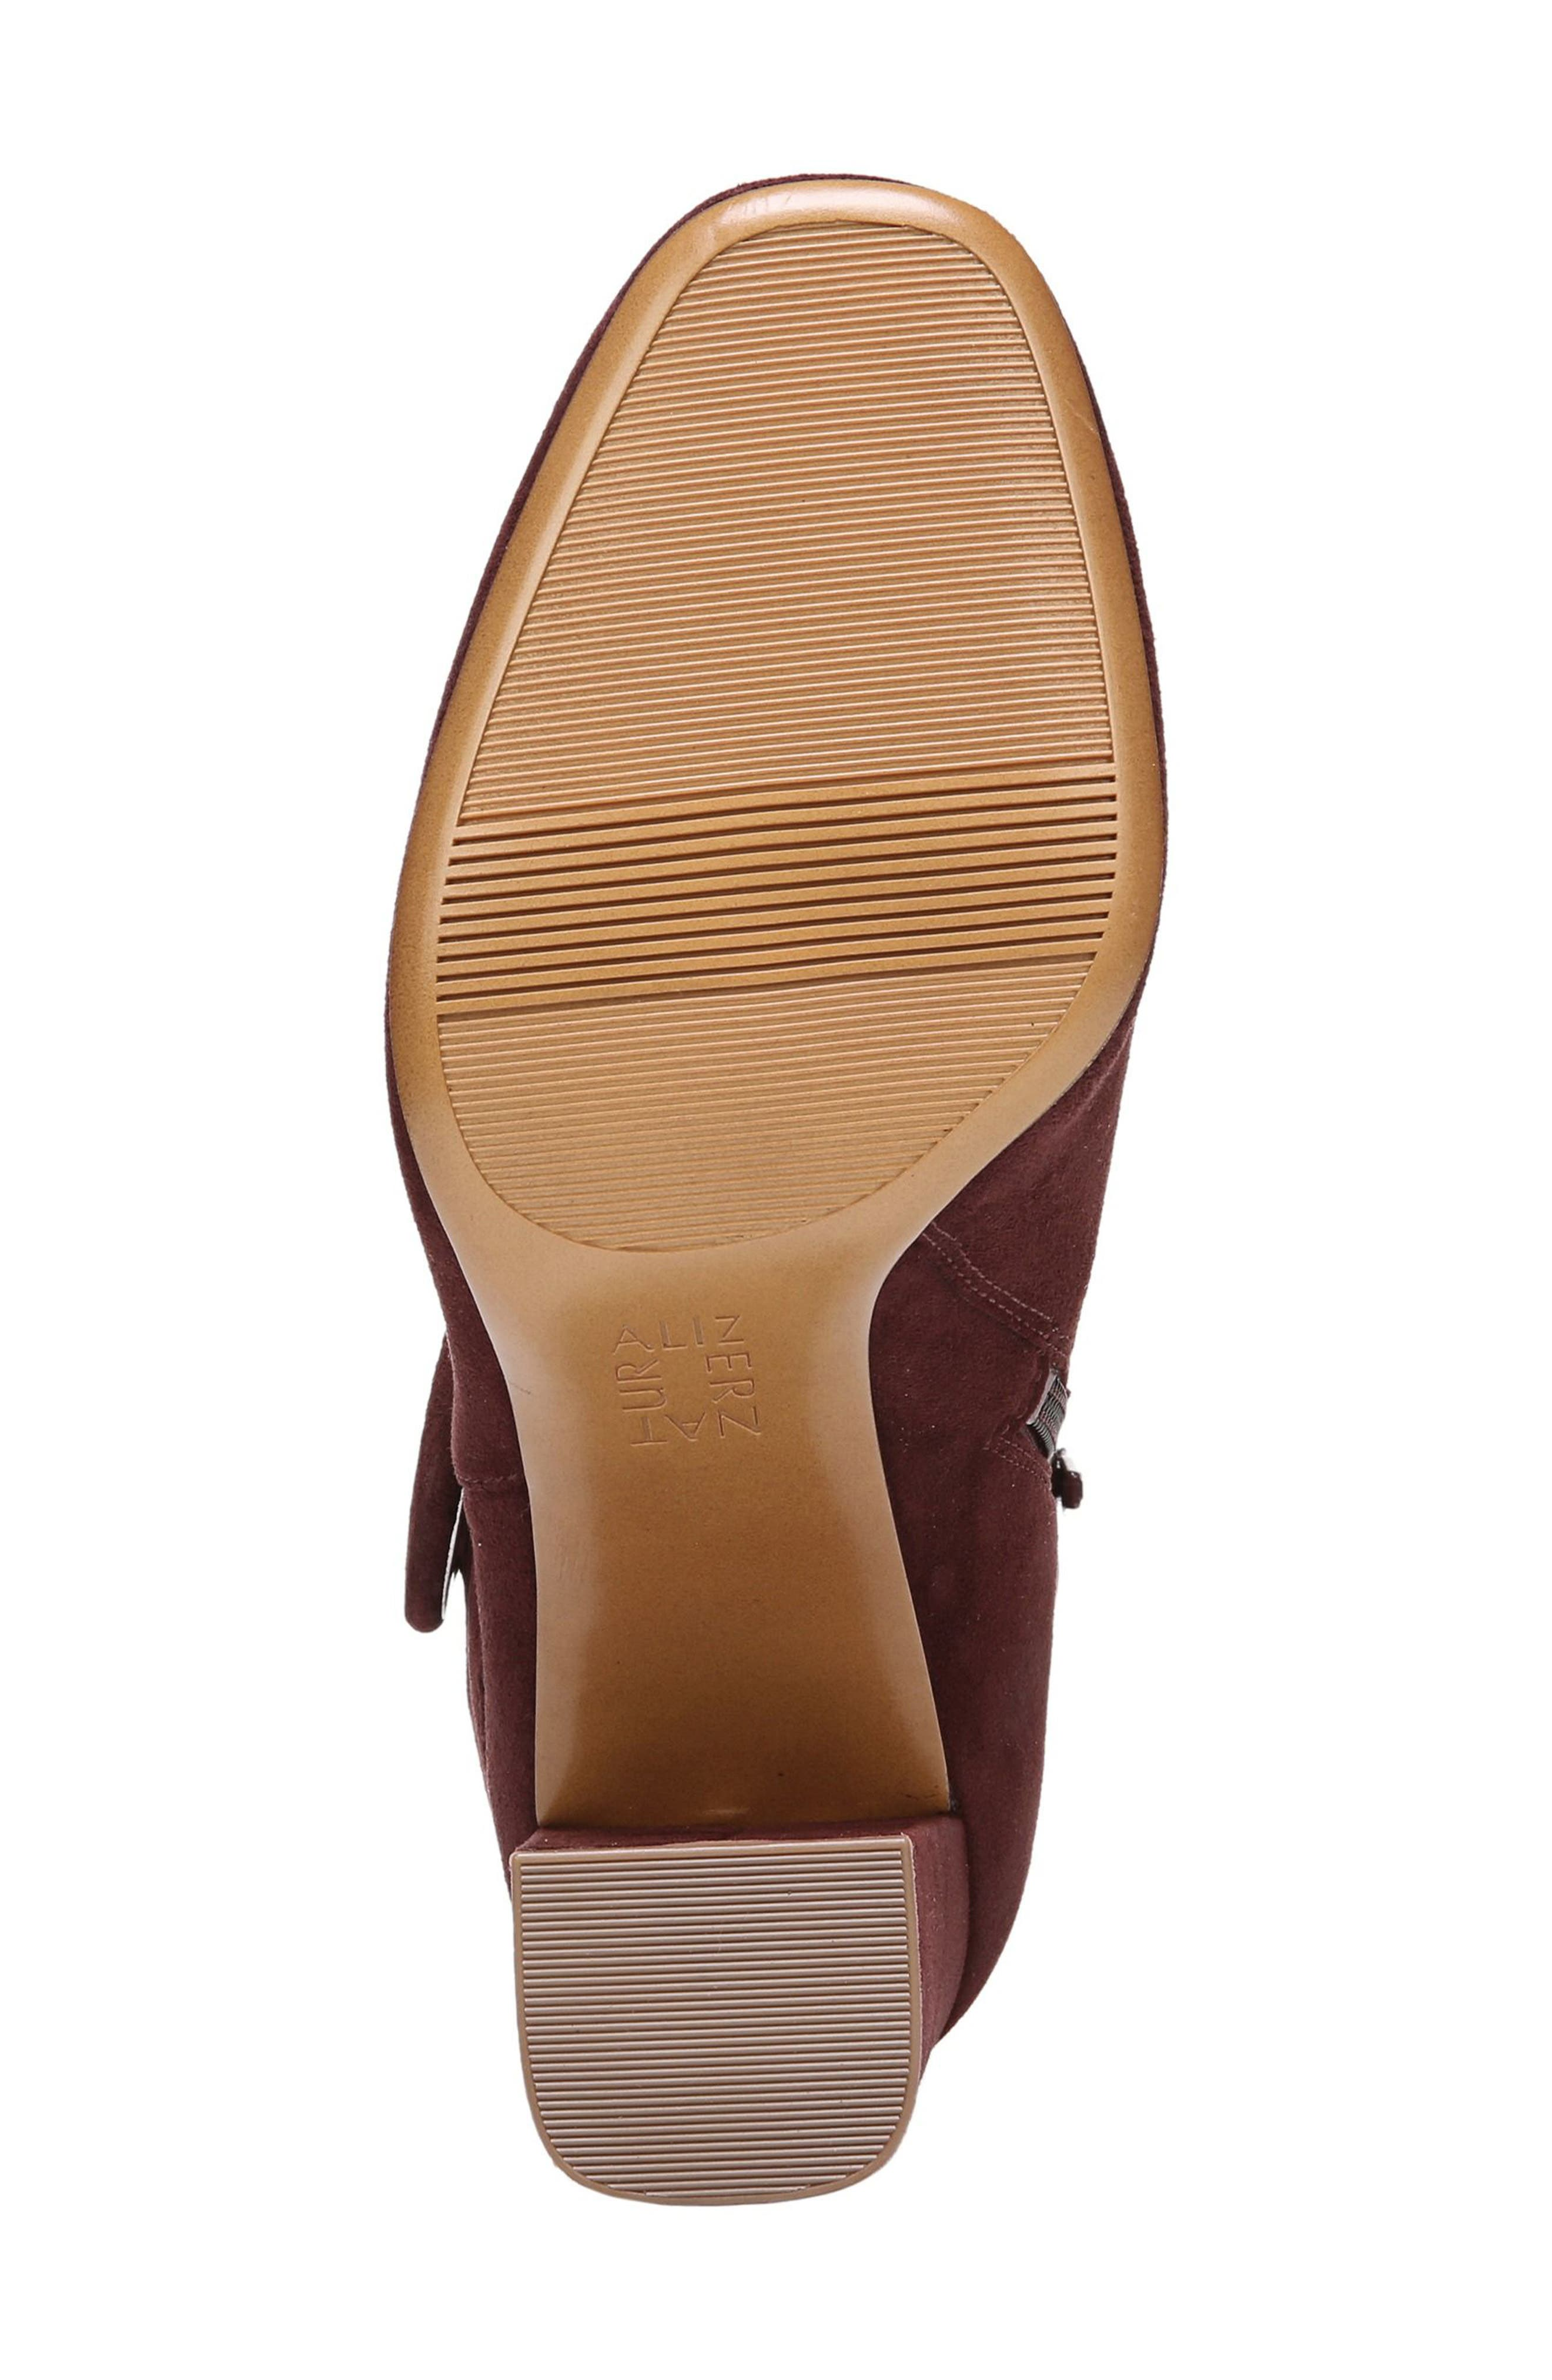 Nautralizer Rae Bootie,                             Alternate thumbnail 6, color,                             Bordo Leather